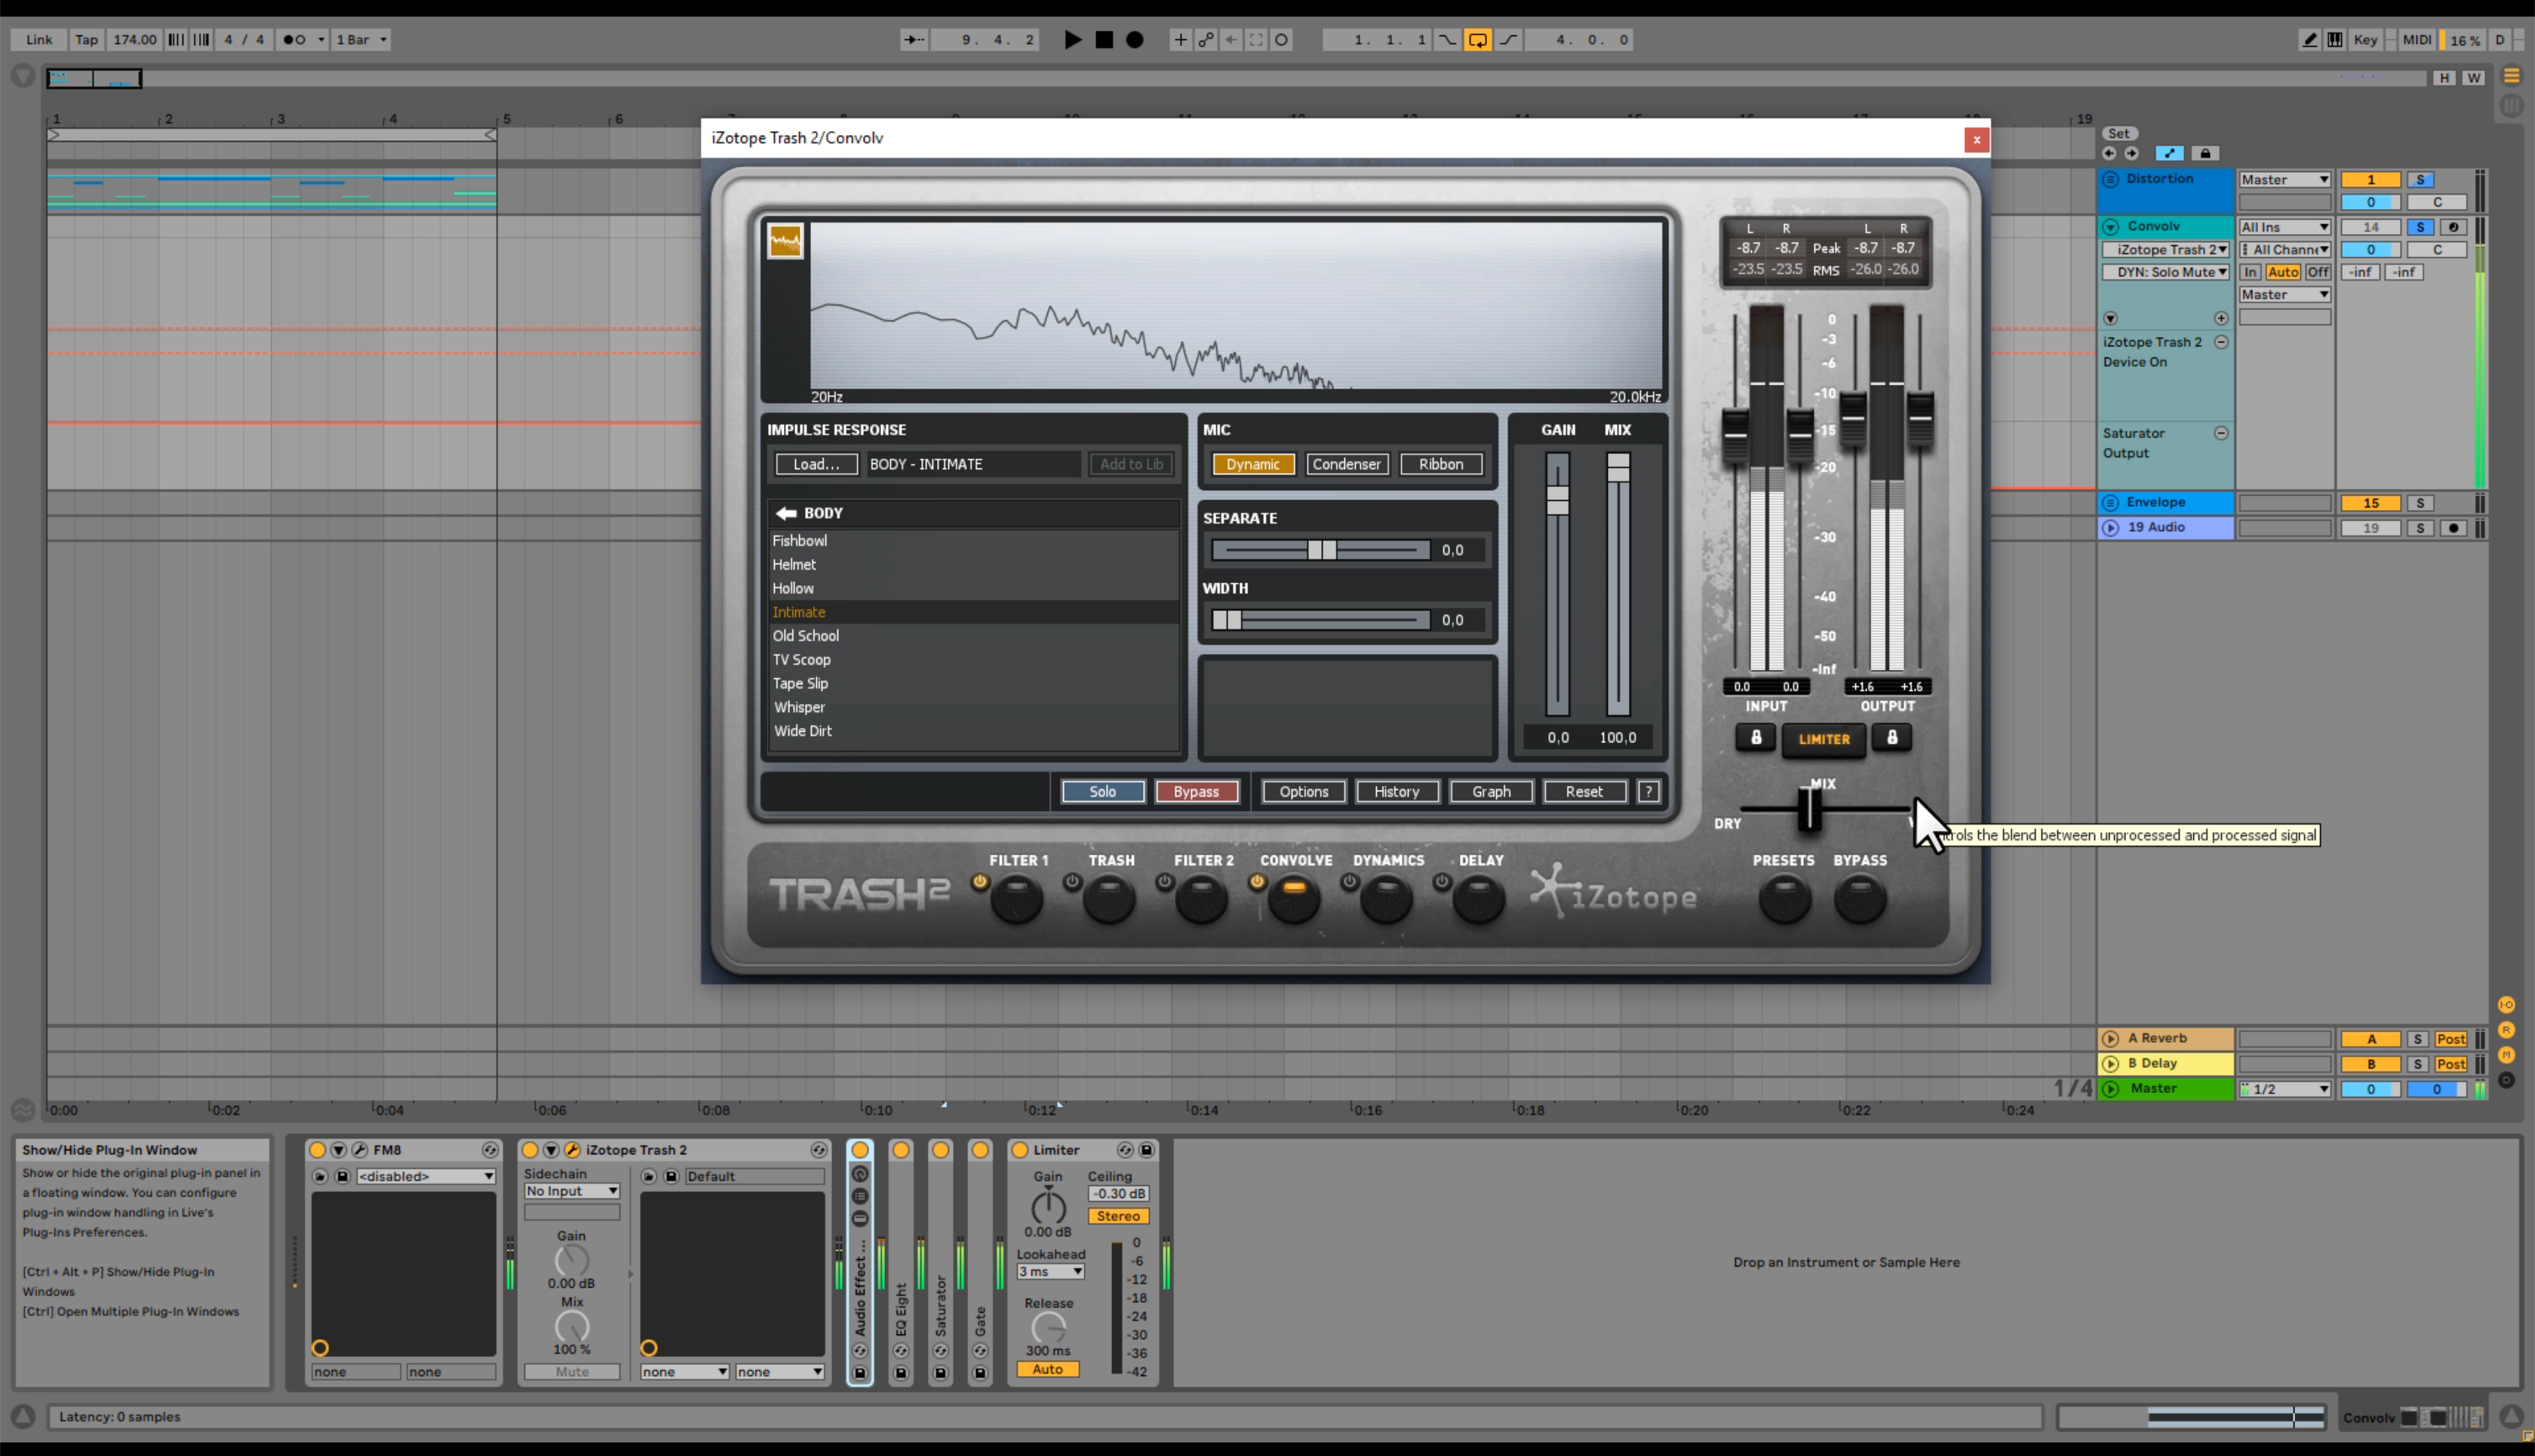 How to Use Distortion with iZotope's Trash 2 + the Convolve Module